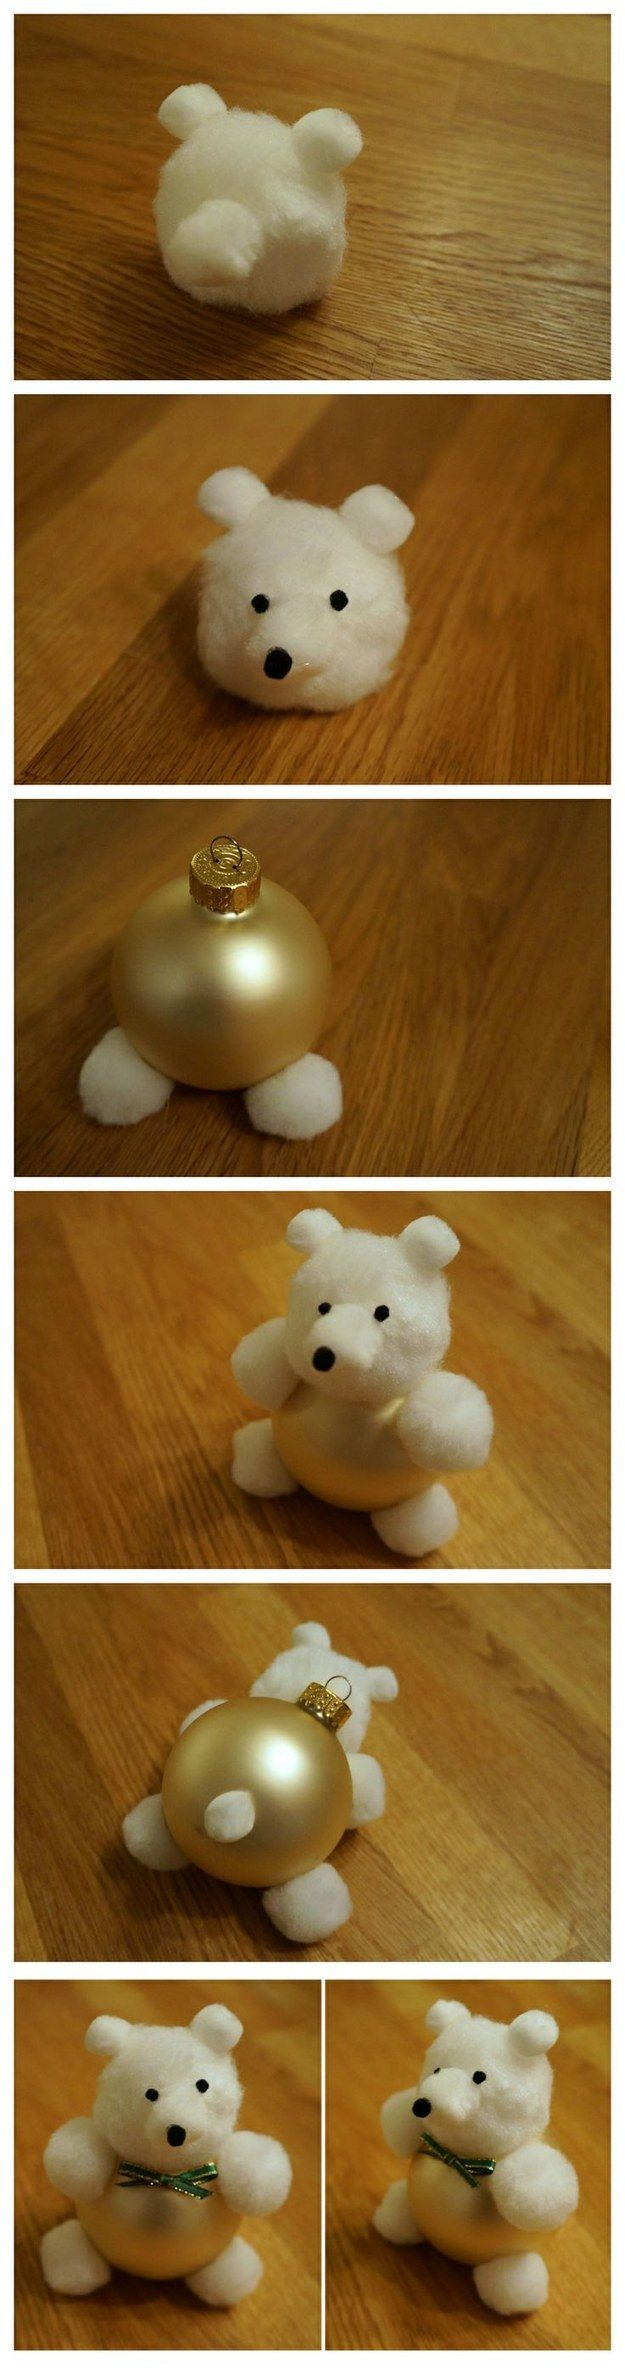 Cotton Ball Teddy Bear Ornament | 62 Impossibly Adorable Ways To Decorate This Christmas: